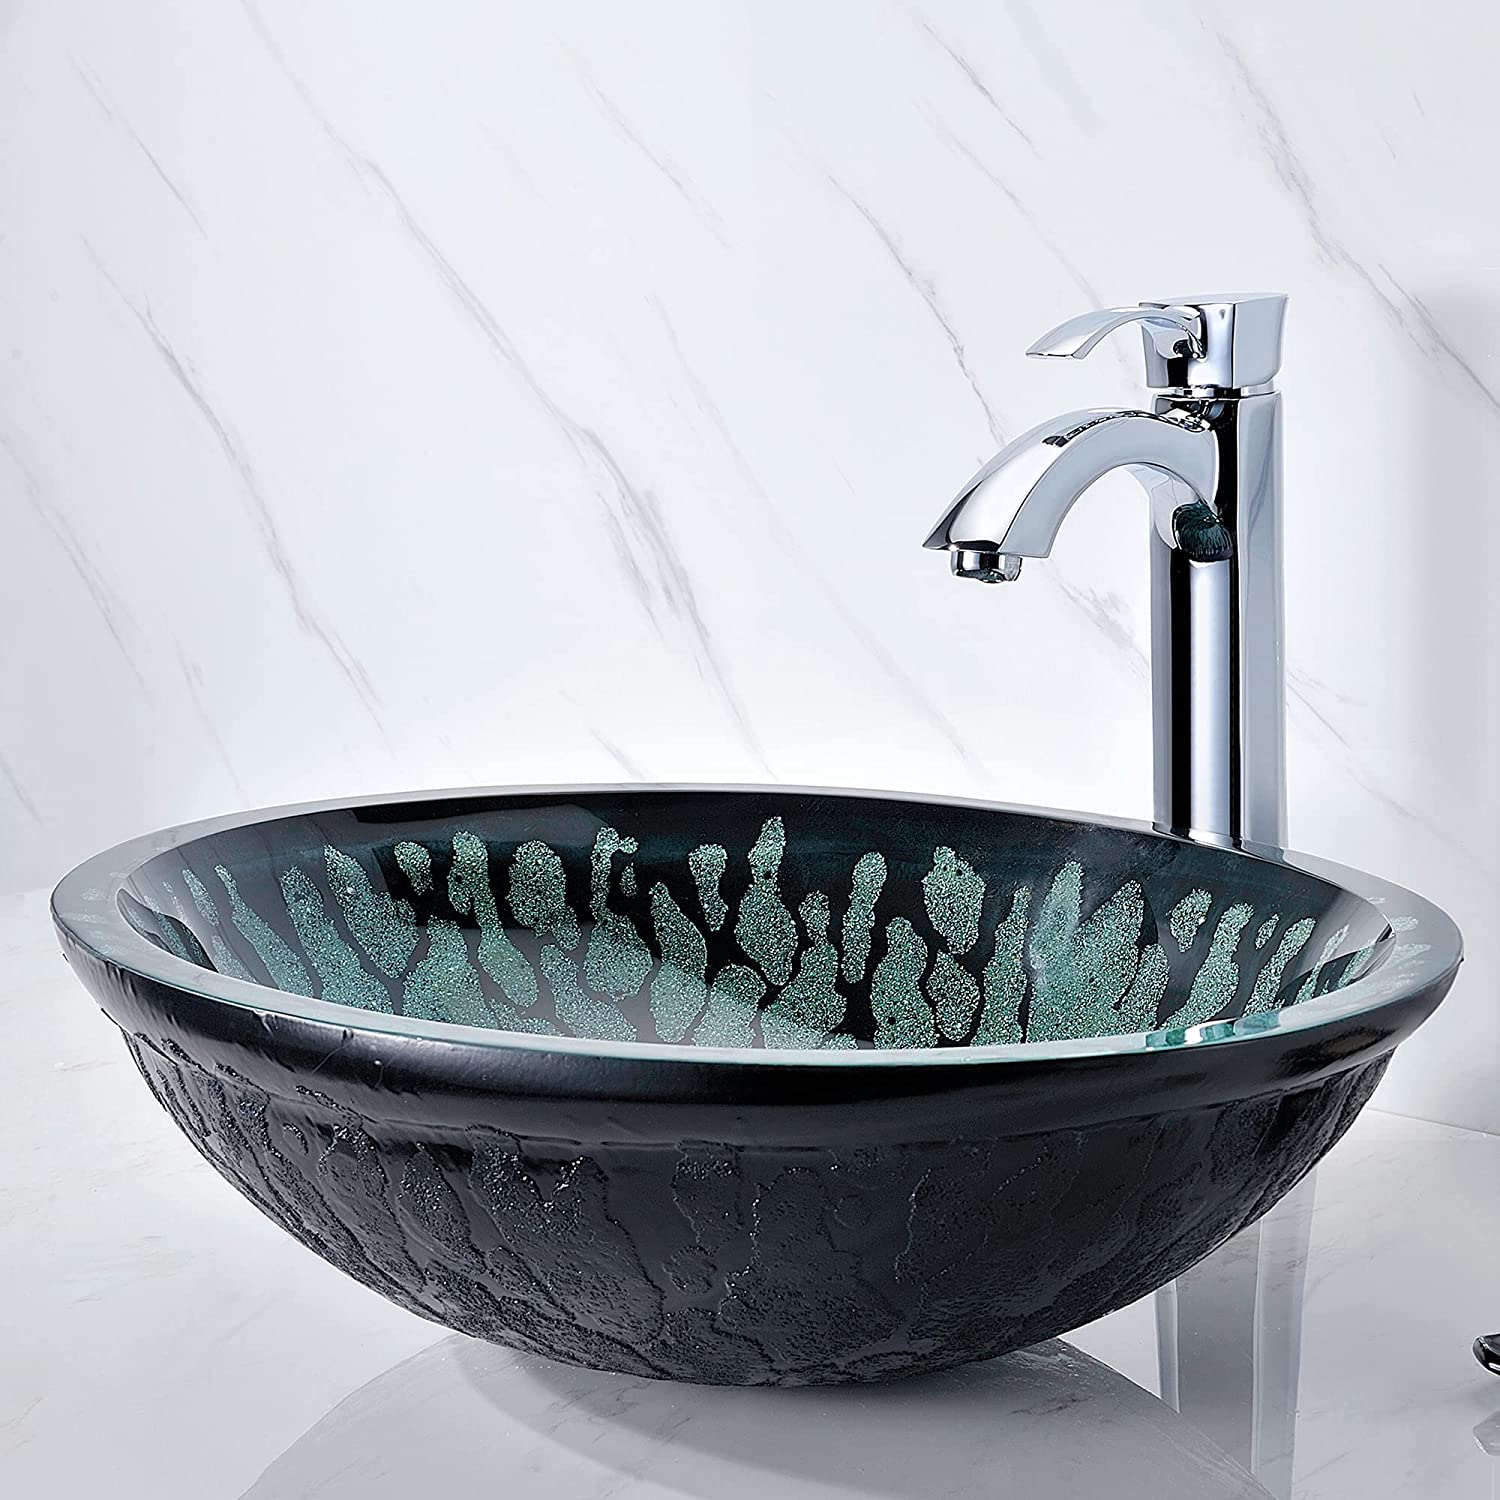 Buy Anzzi Bravo Series Modern Tempered Glass Vessel Bowl Sink In Lustrous Black Top Mount Bathroom Sinks Above Counter Round Vanity Countertop Sink Bowl With Pop Up Drain Ls Az043